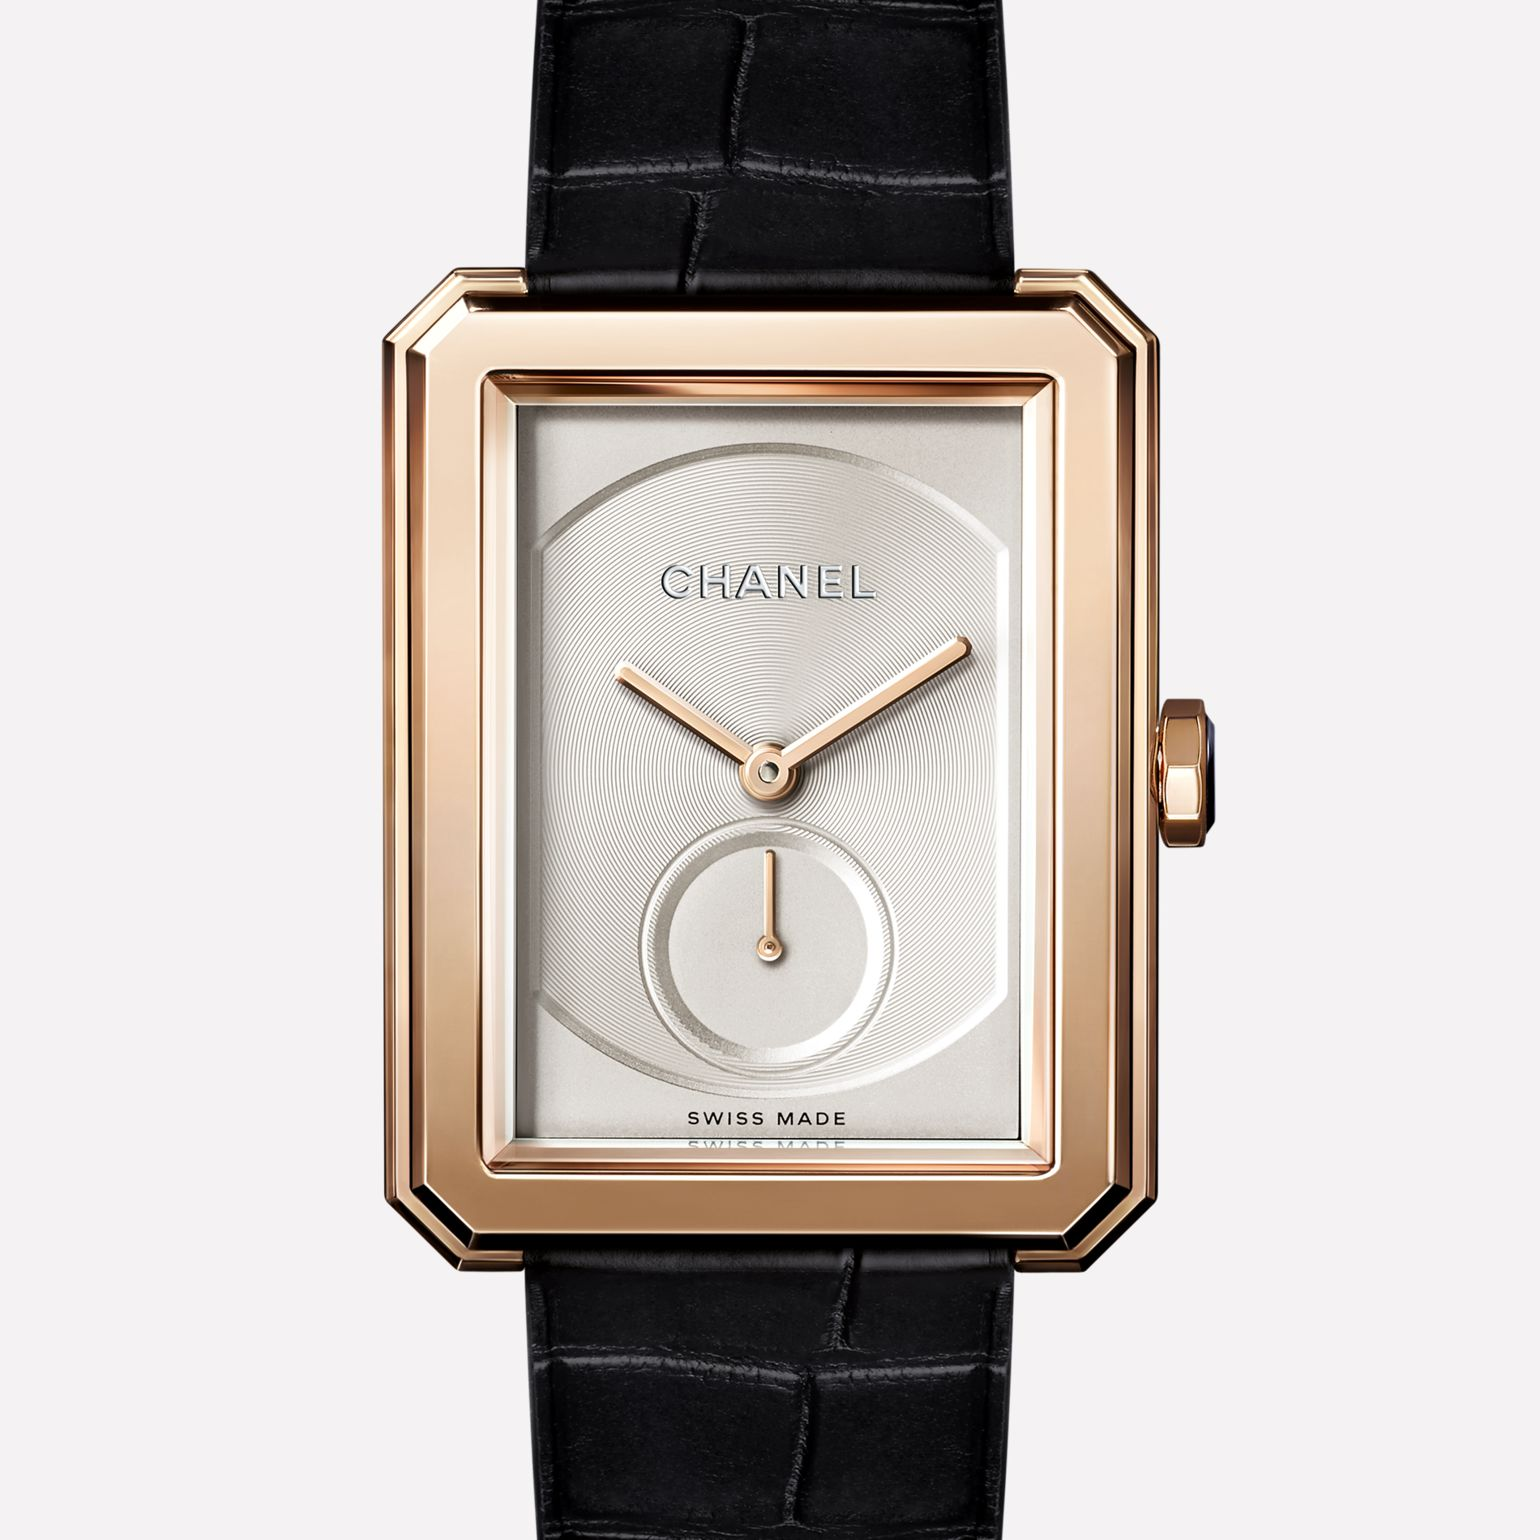 PREMIÈRE∙BOY DE CHANEL Large version, BEIGE GOLD and alligator strap